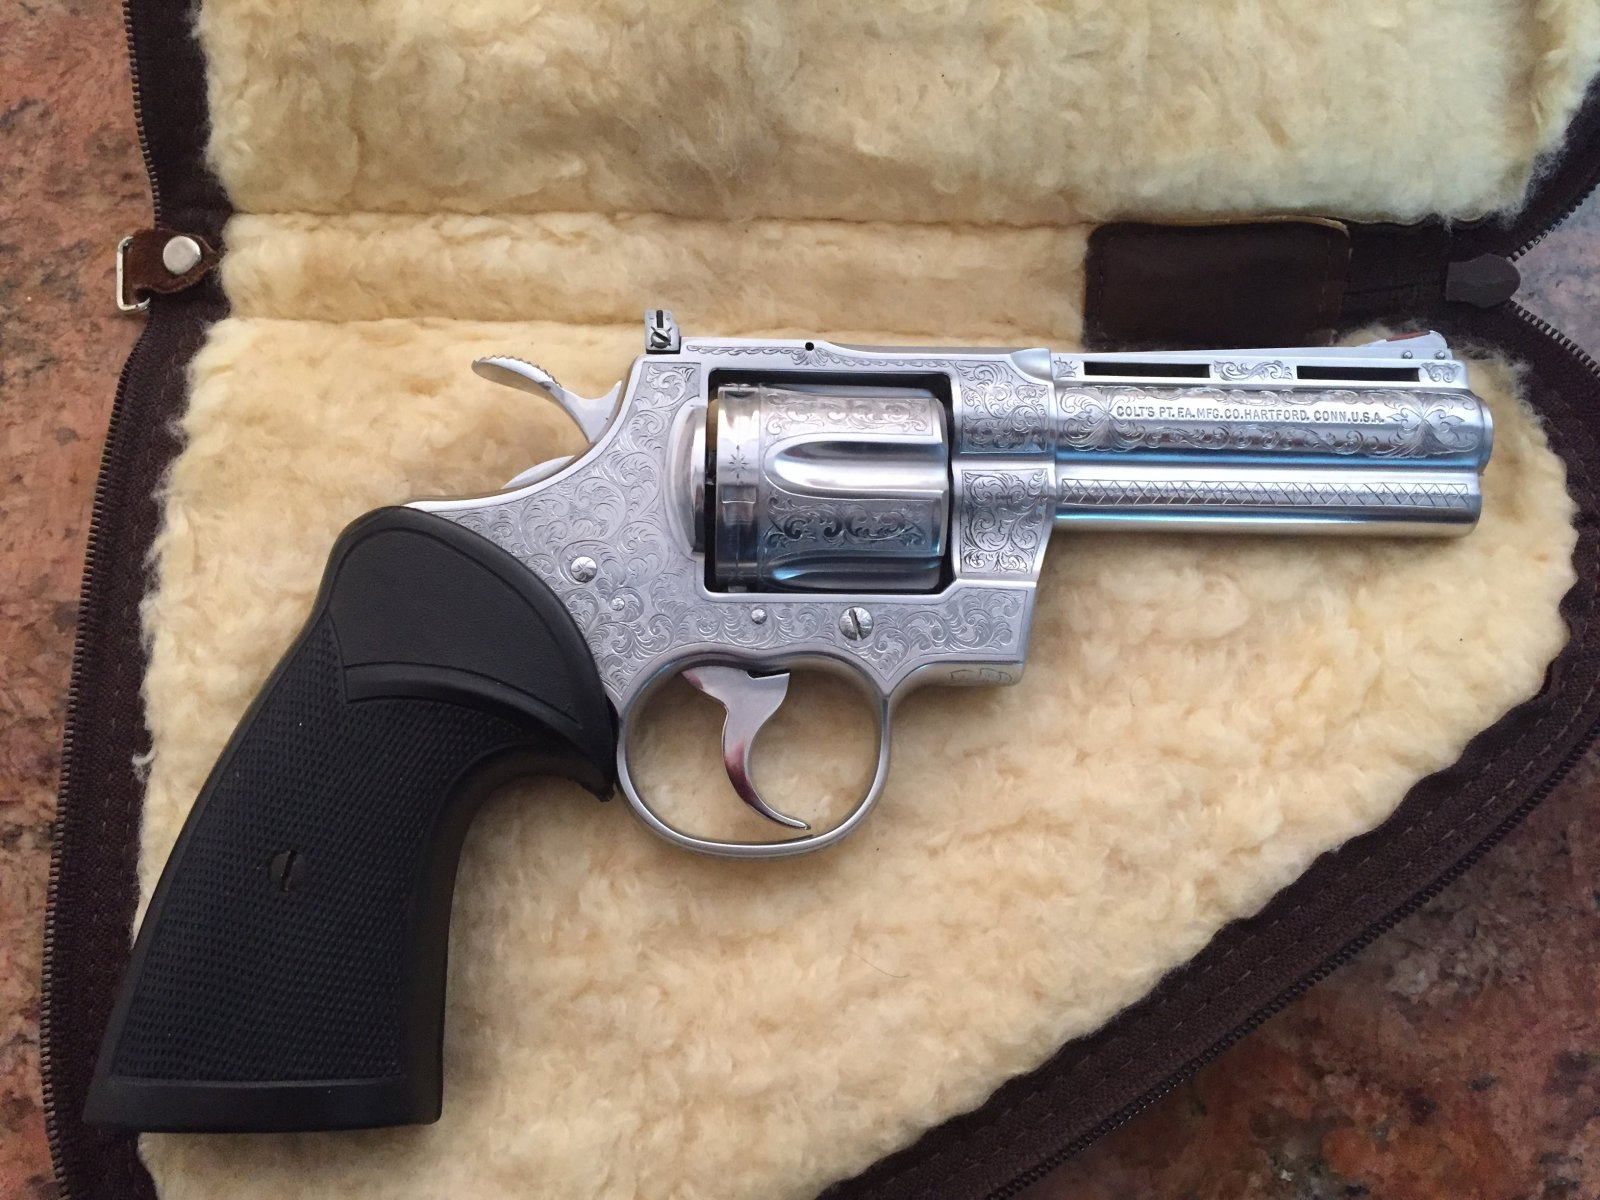 Colt Python insight. | Page 4 | The Leading Glock Forum and ...